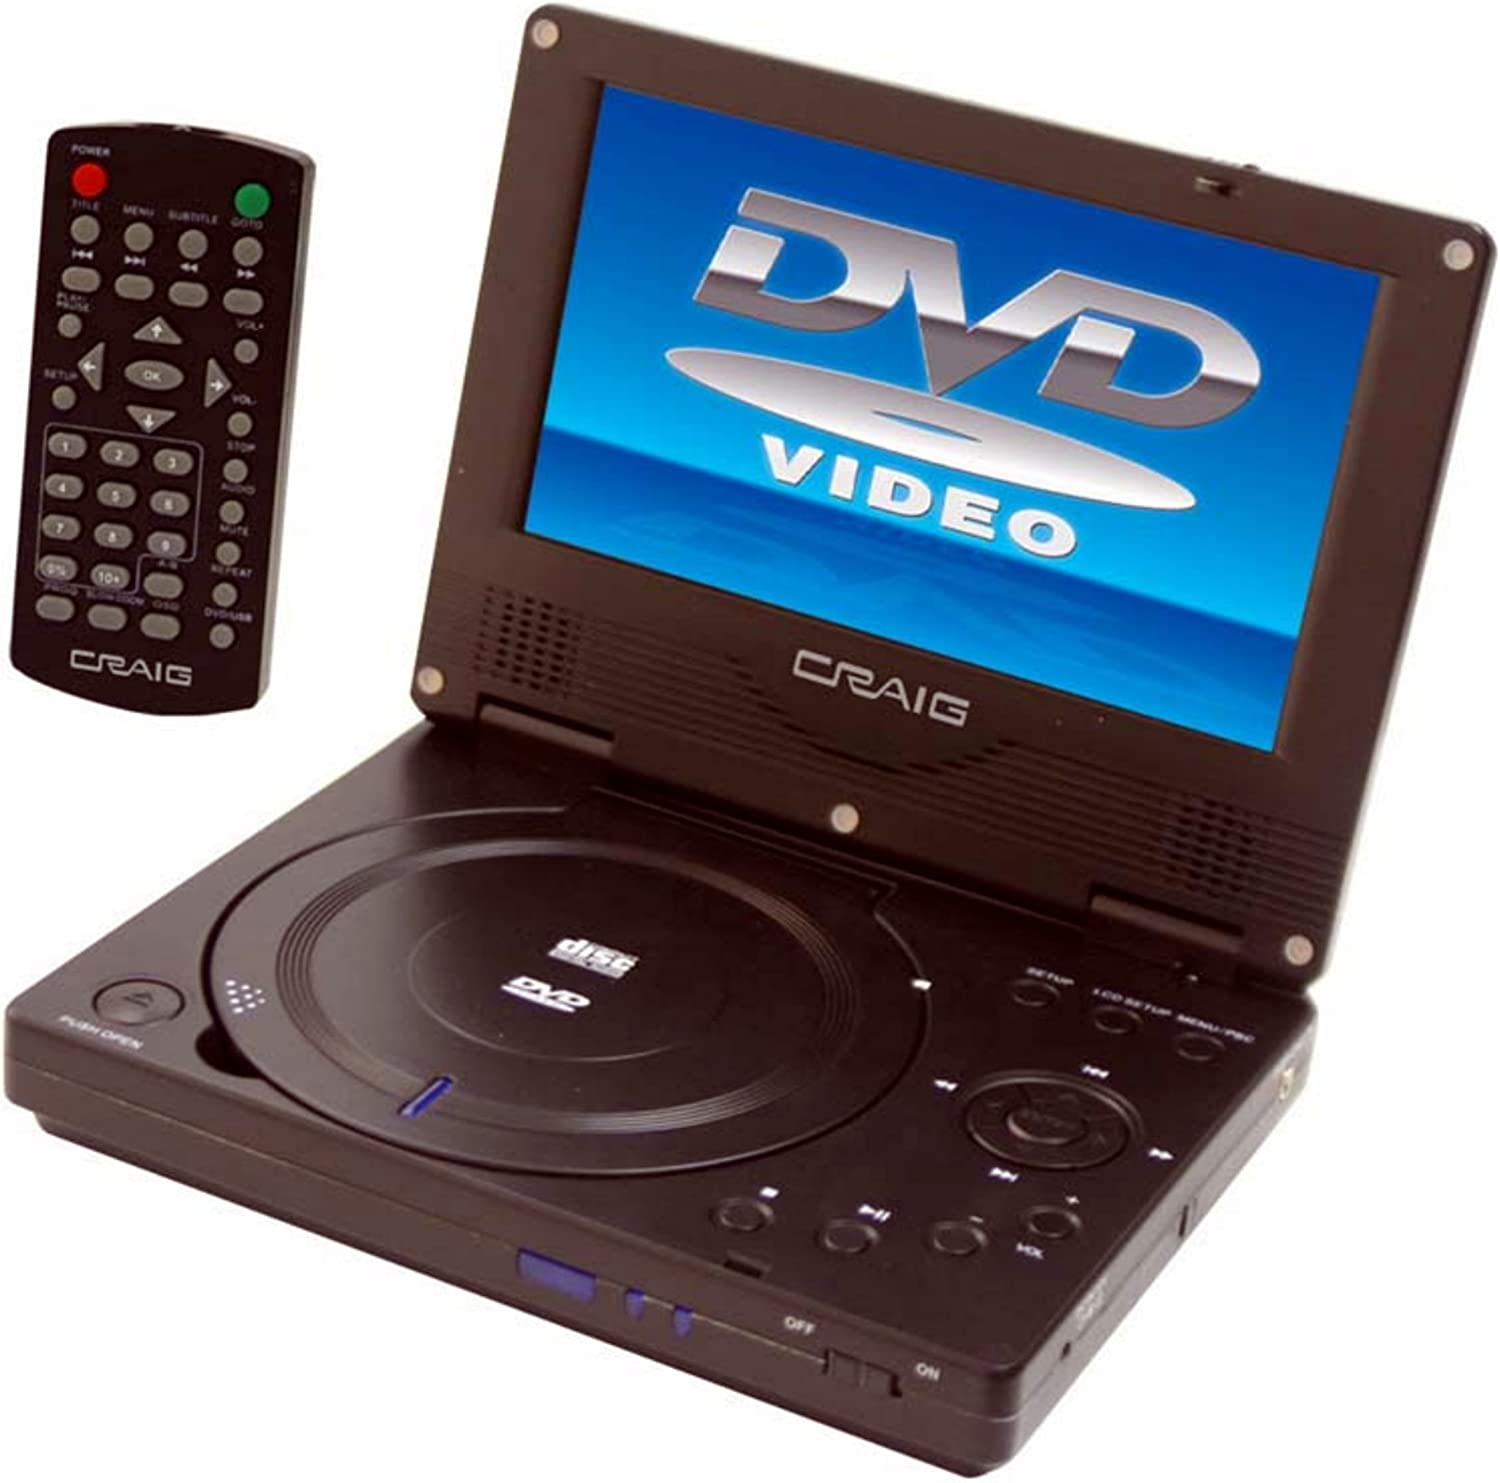 Craig 7-Inch TFTSWIVEL SCREEN Portable DVD/CD Player with Remote, Black (CTFT716n)